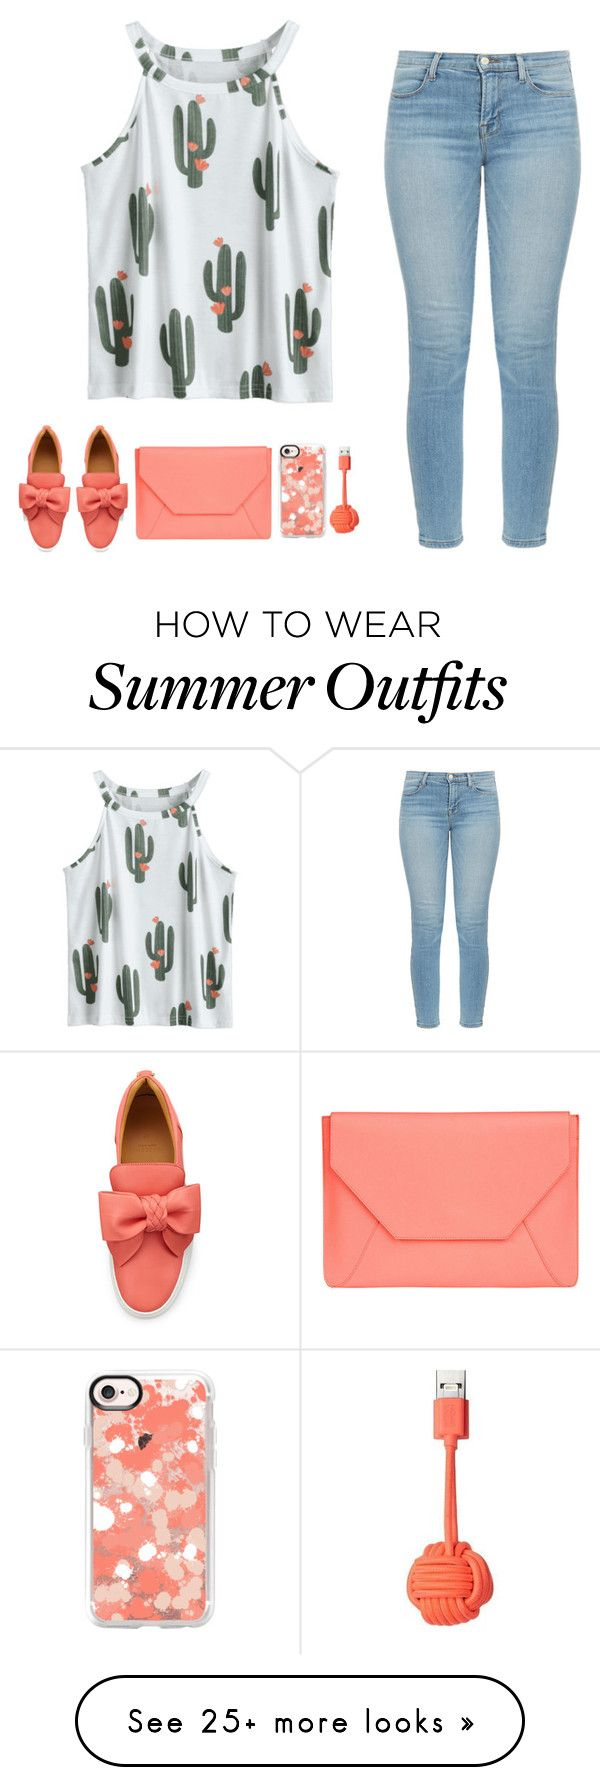 """Cactus Summer Outfit"" by bunnyrabbit8 on Polyvore featuring J Brand, BUSCEMI, Senreve, Casetify and Native Union"